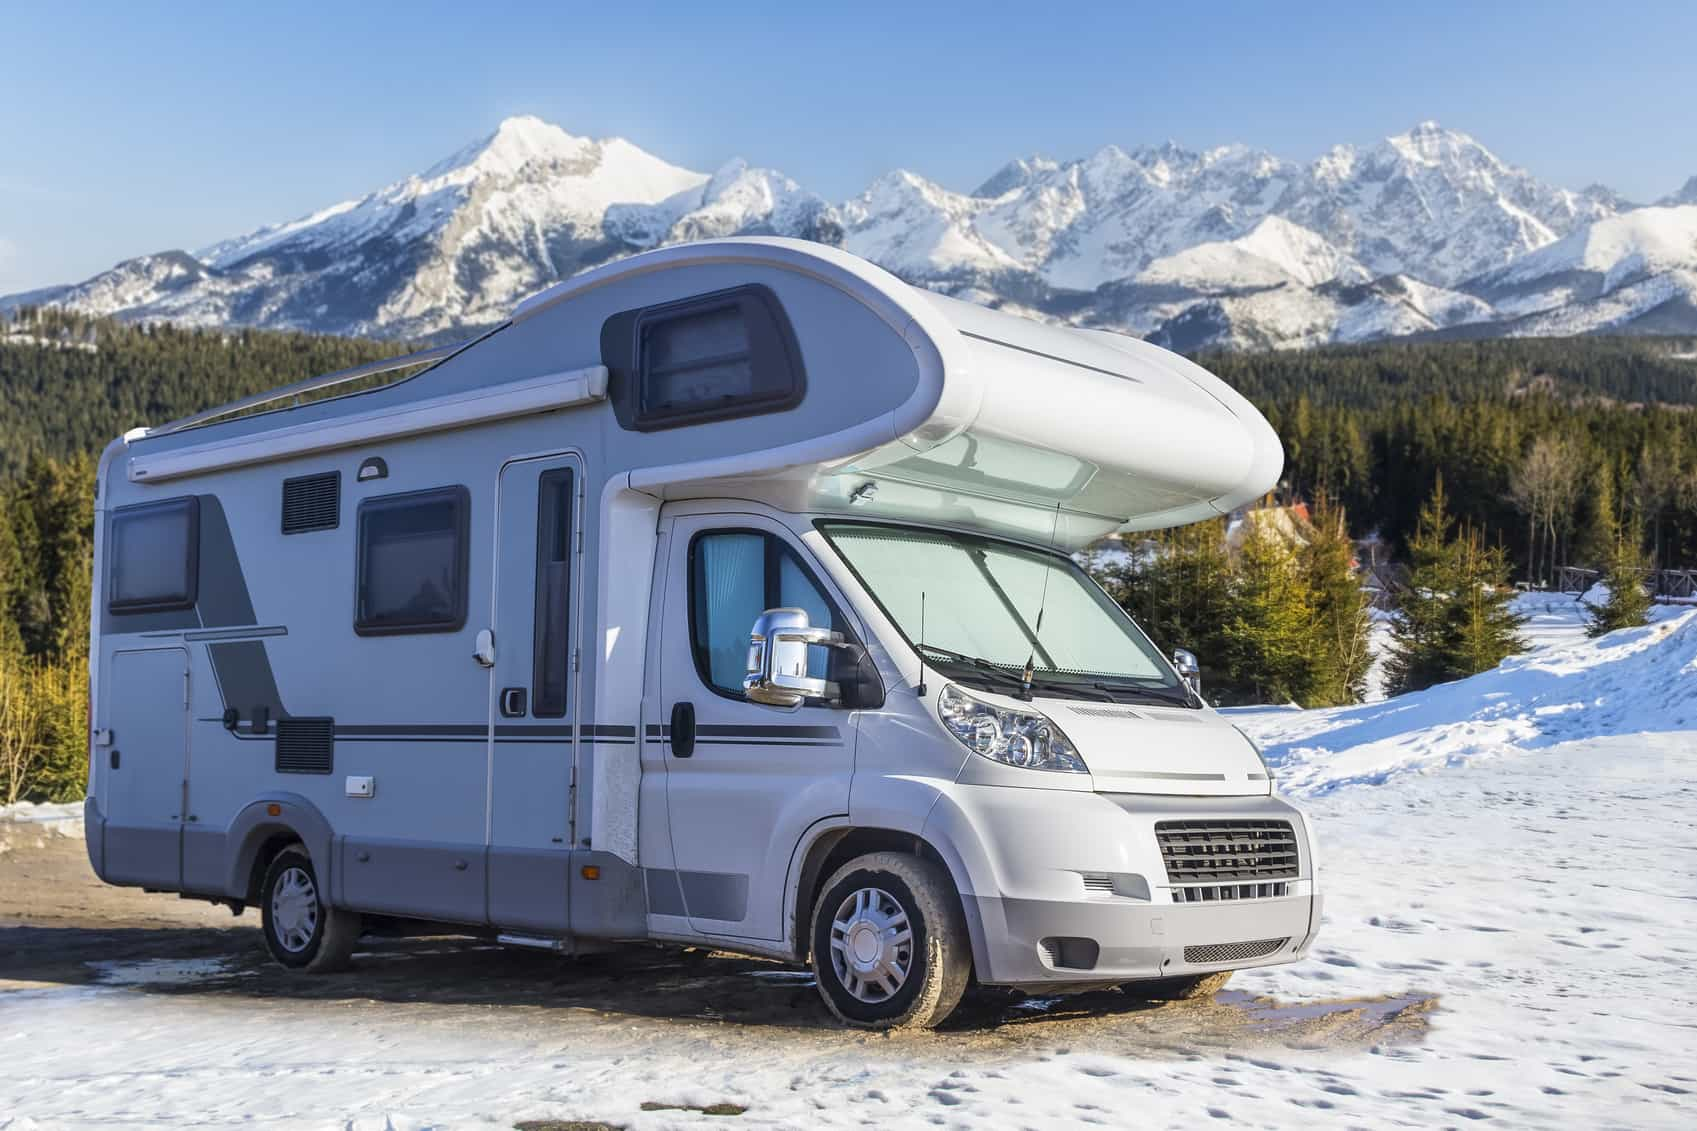 The Best Extreme Cold Weather RVs To Buy In 2020